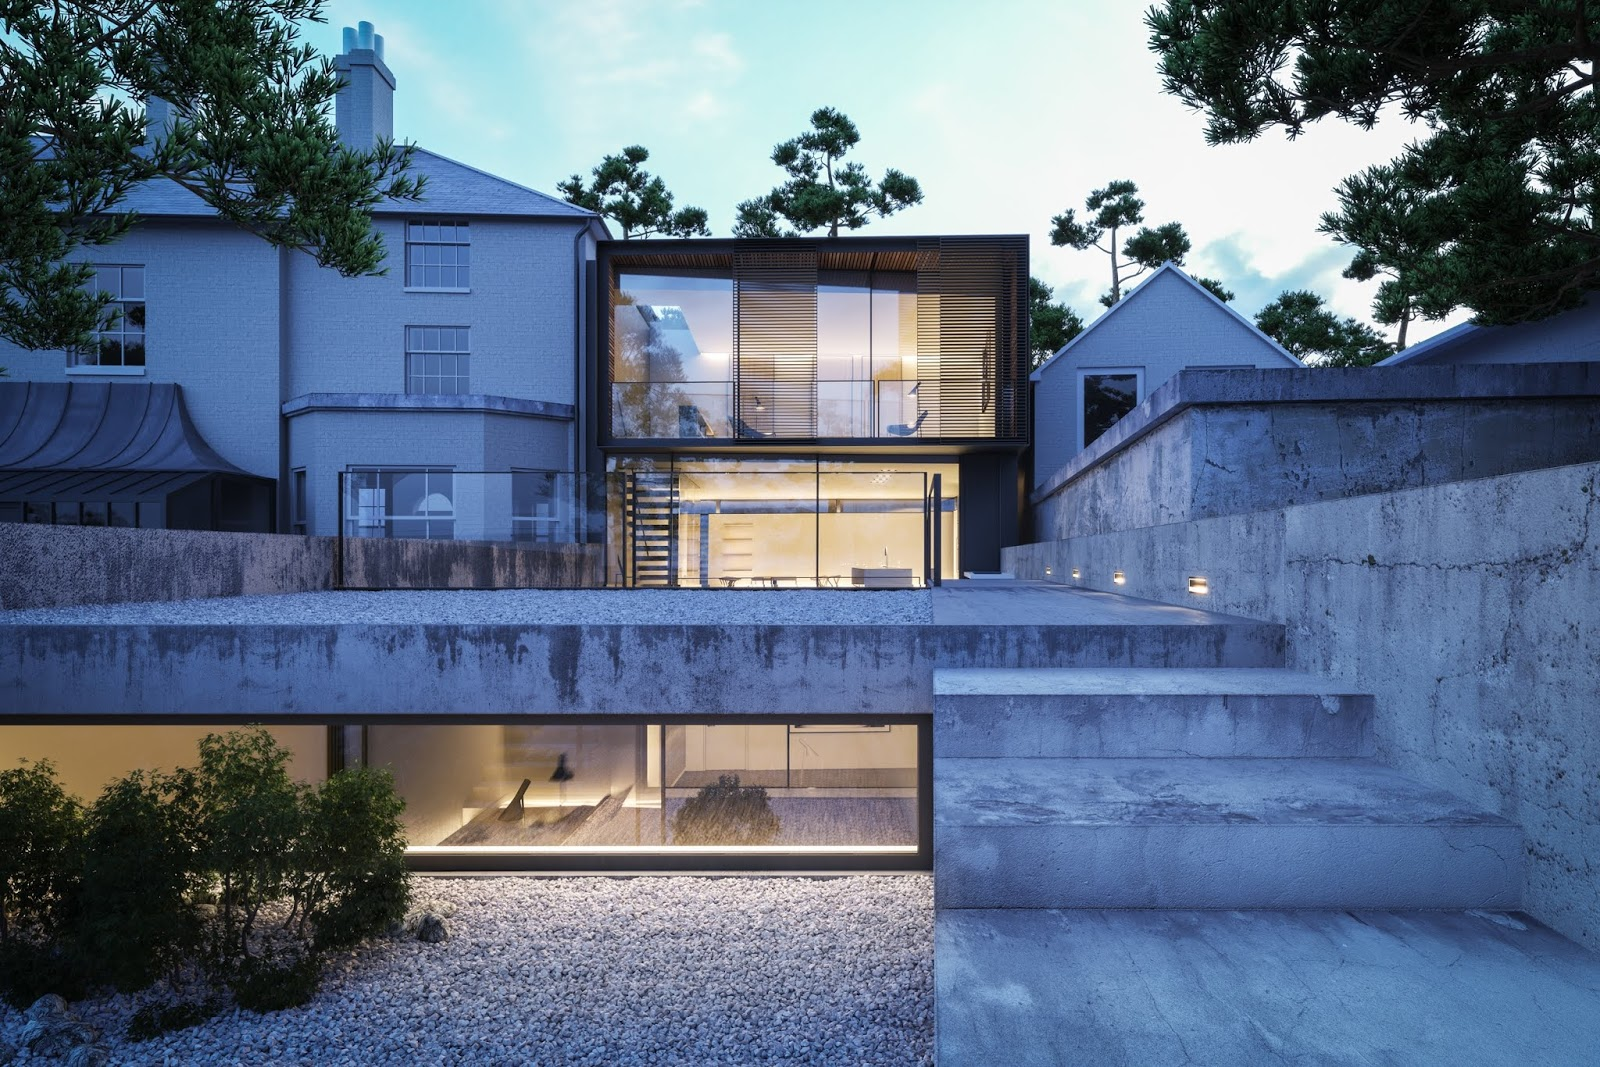 Free 3ds max exterior scene for vray